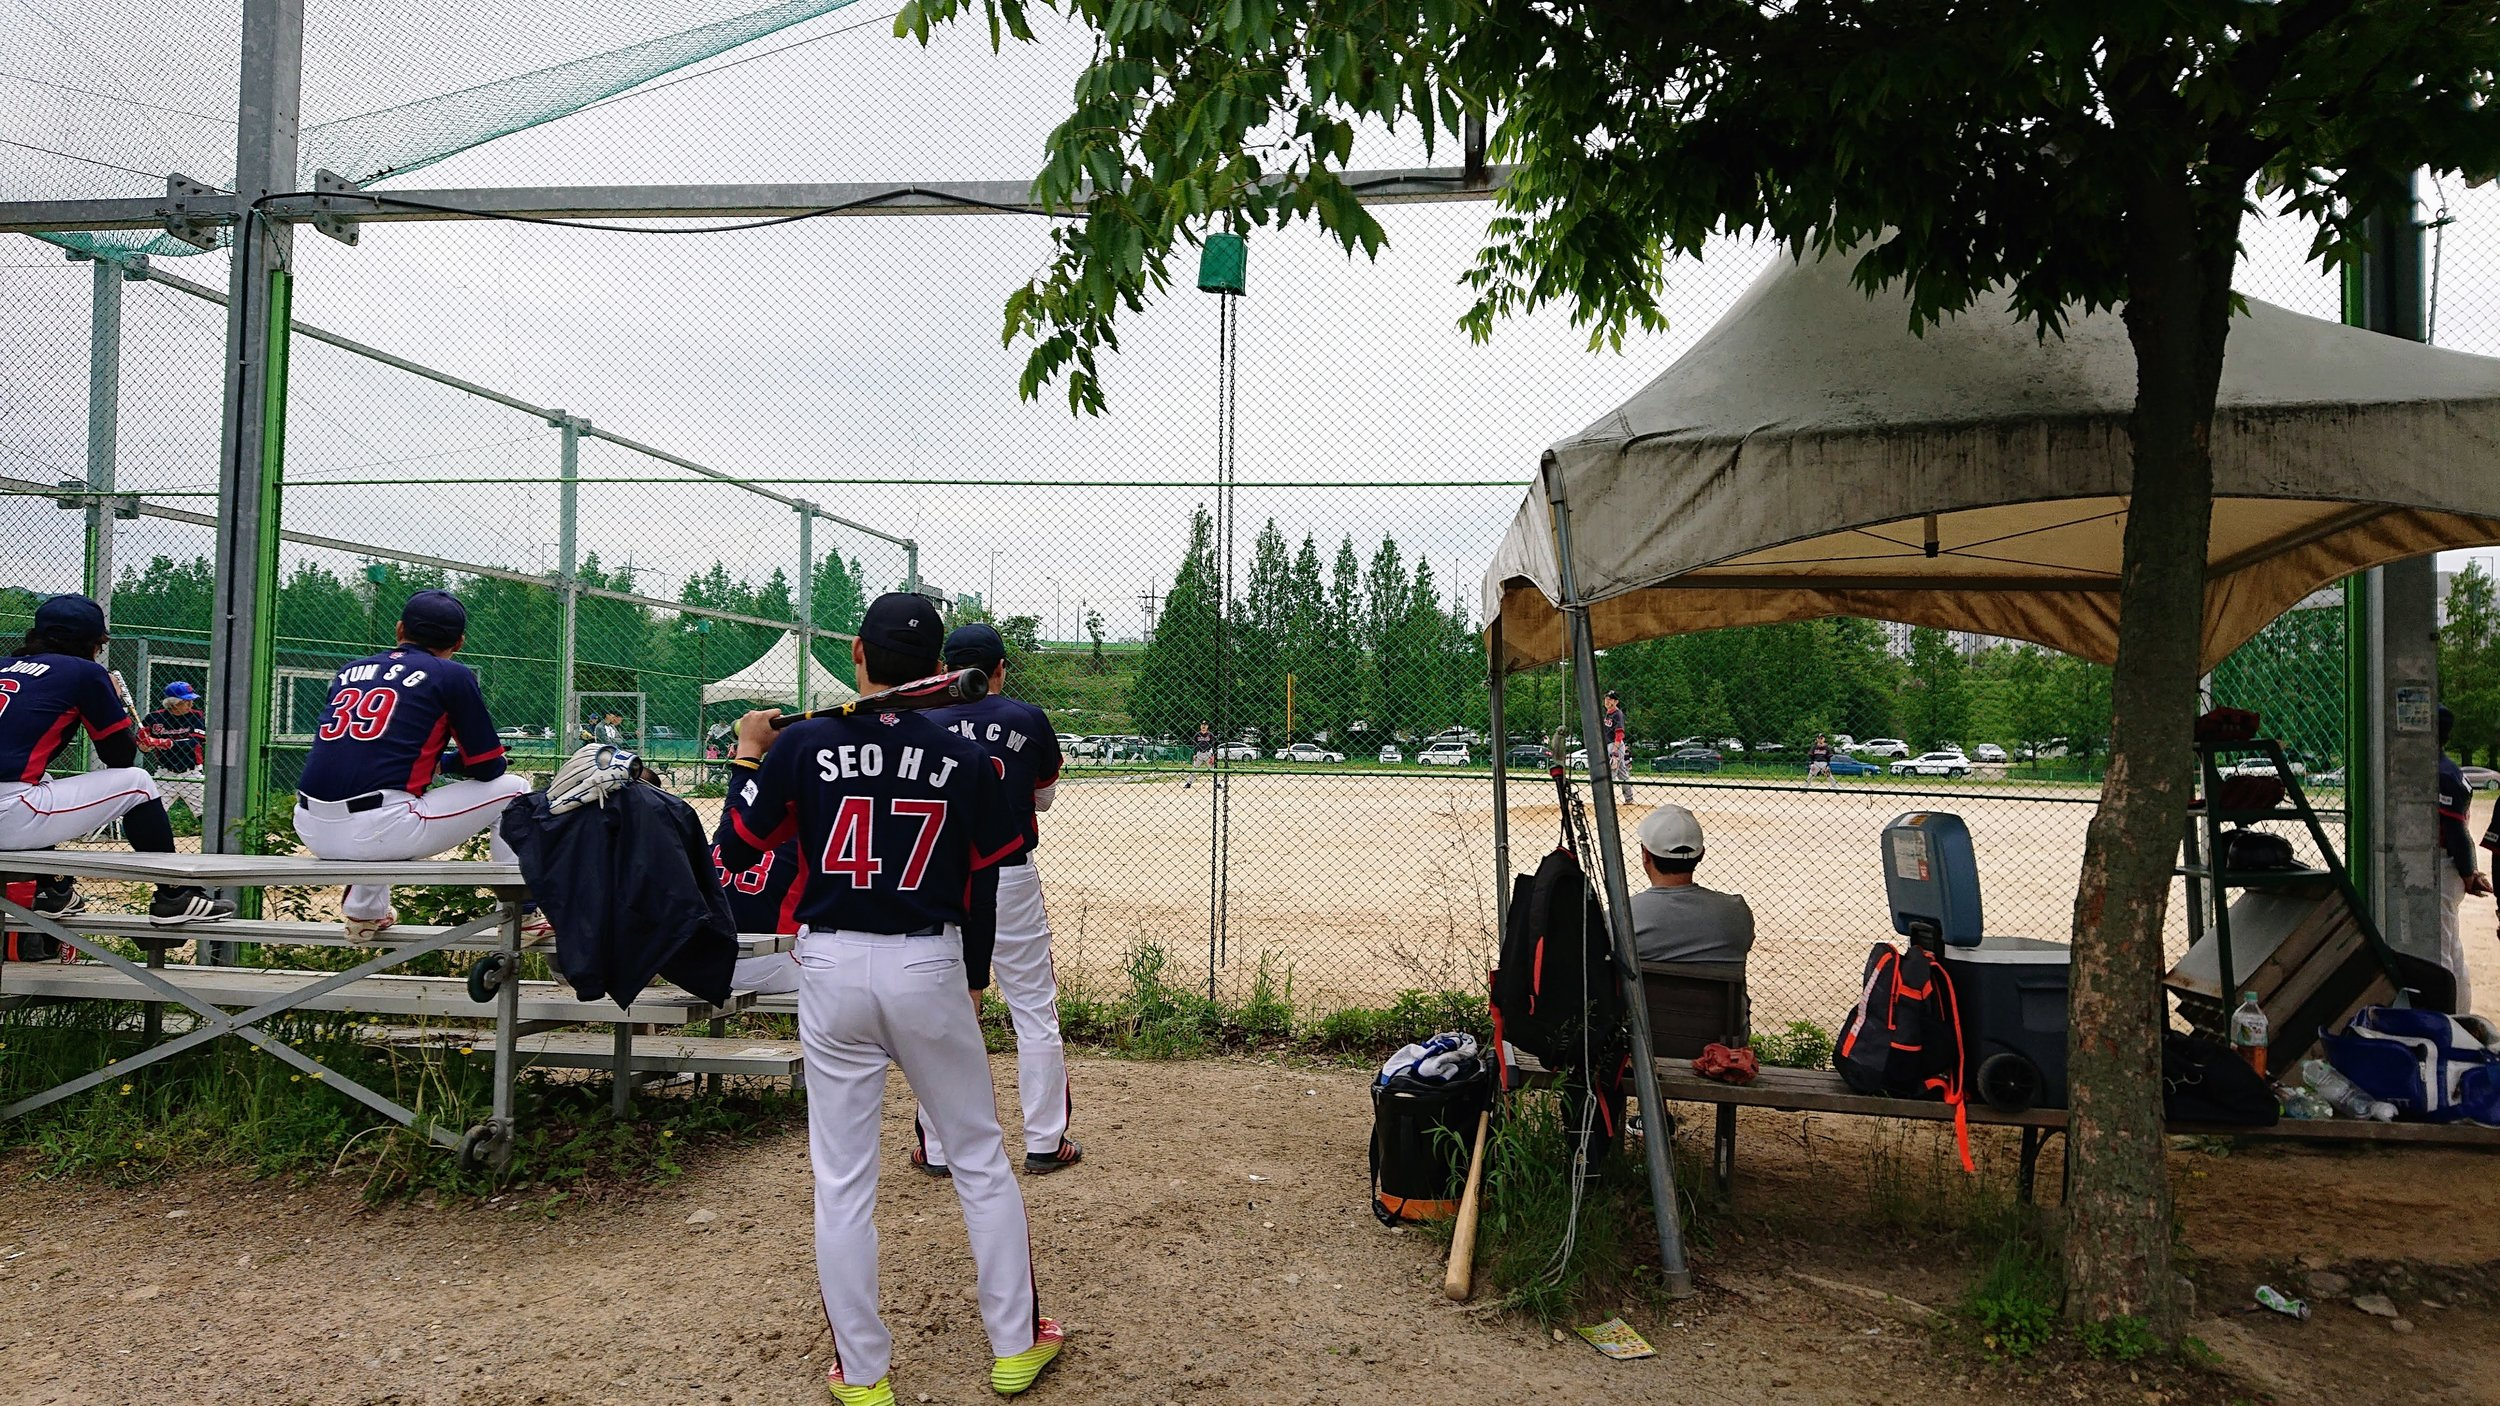 Koreans love a bit of baseball. You're never far from a game.